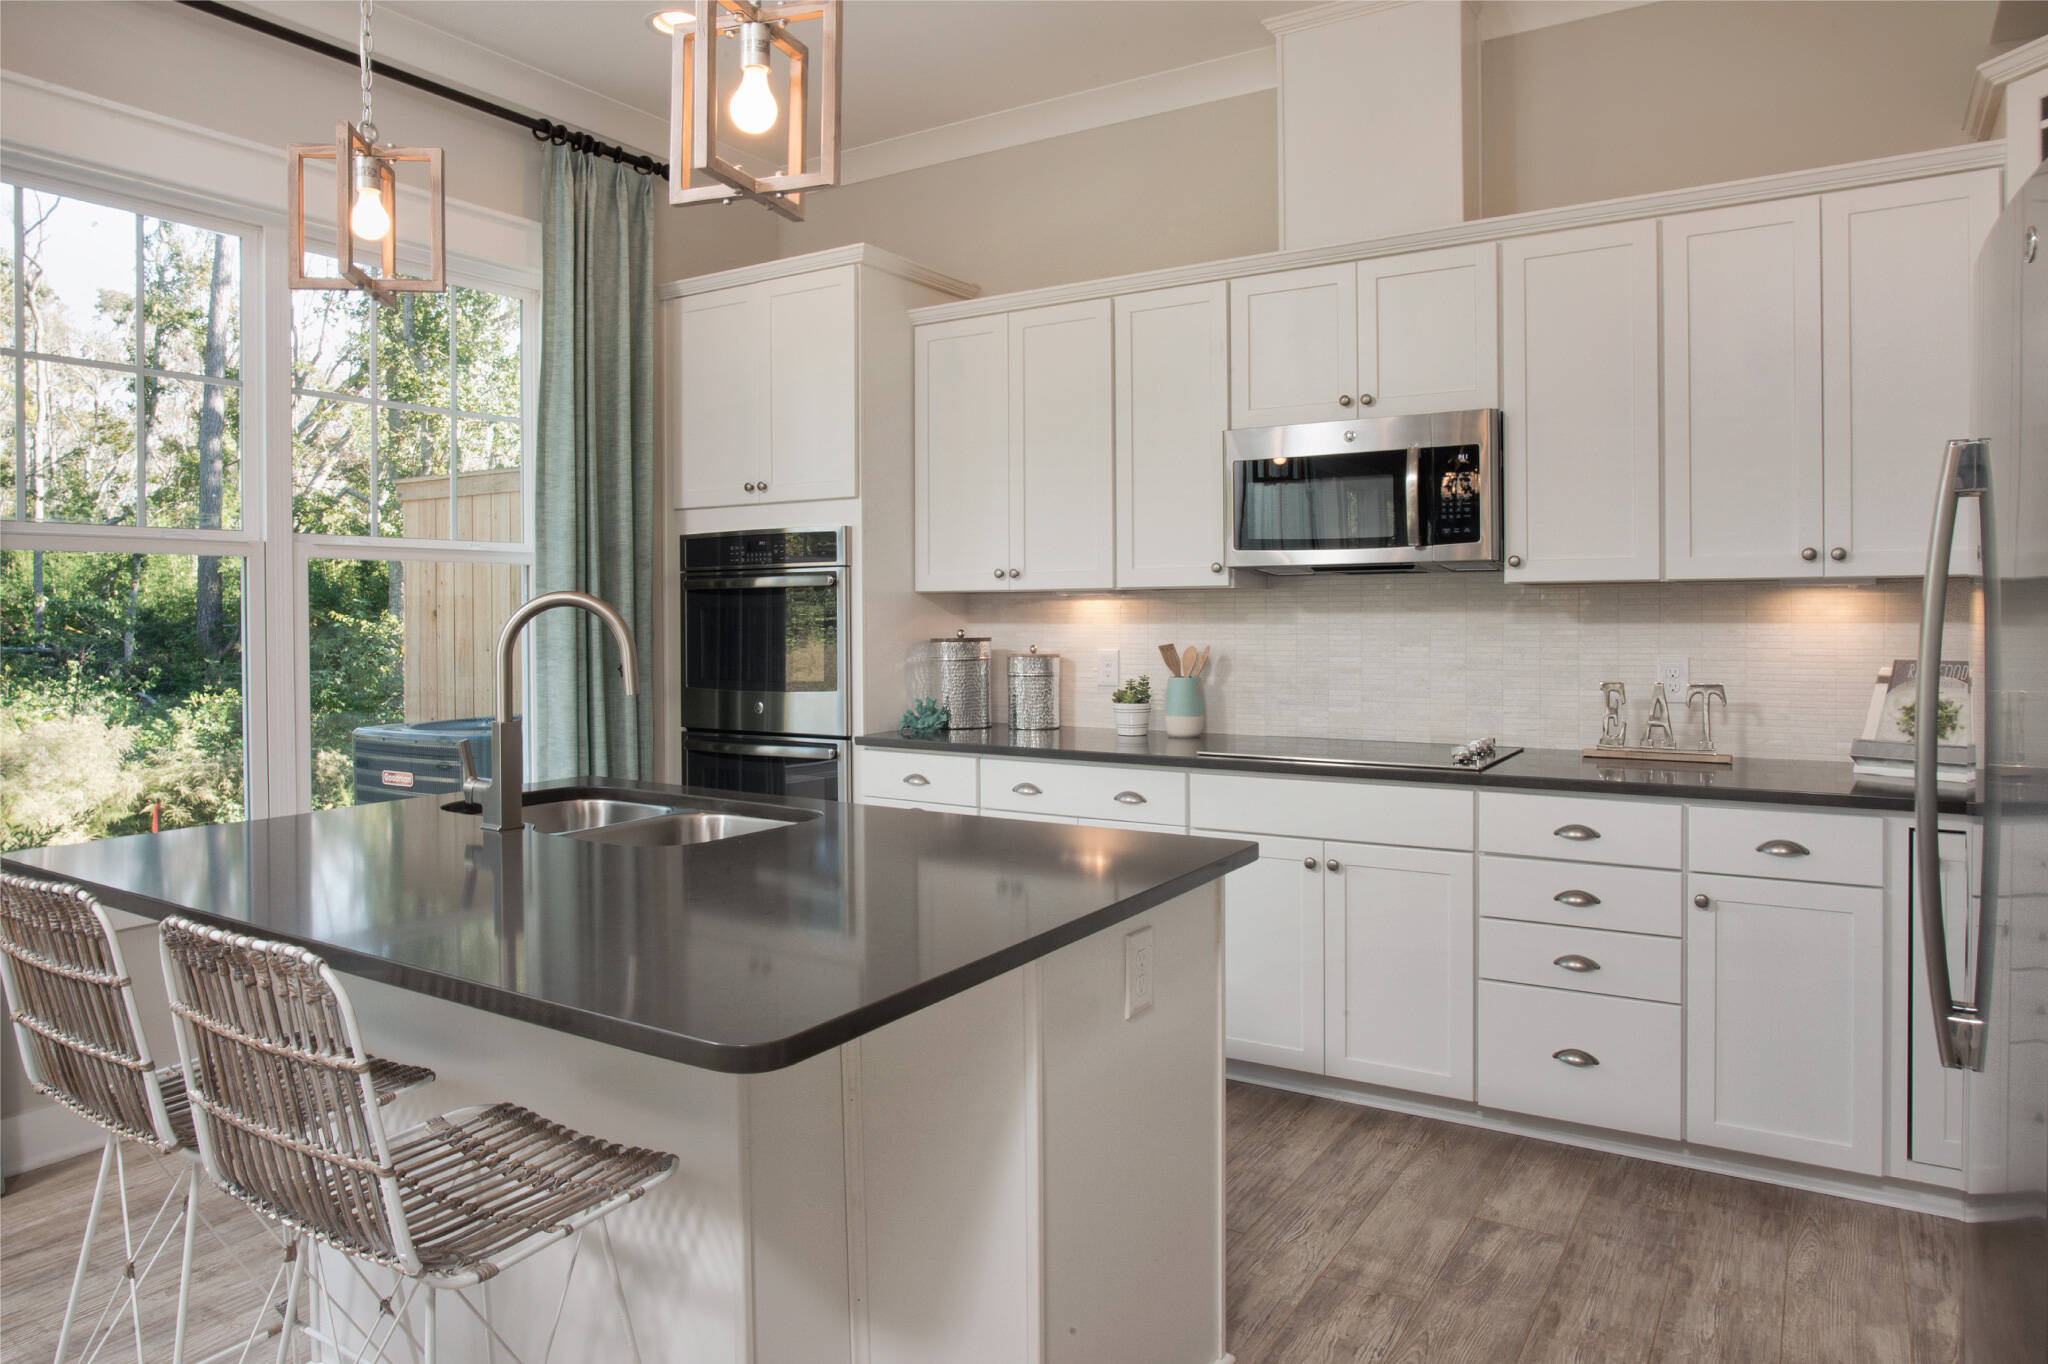 kitchen with island in surfside at magnolia place new townhomes in hilton head island south carolina